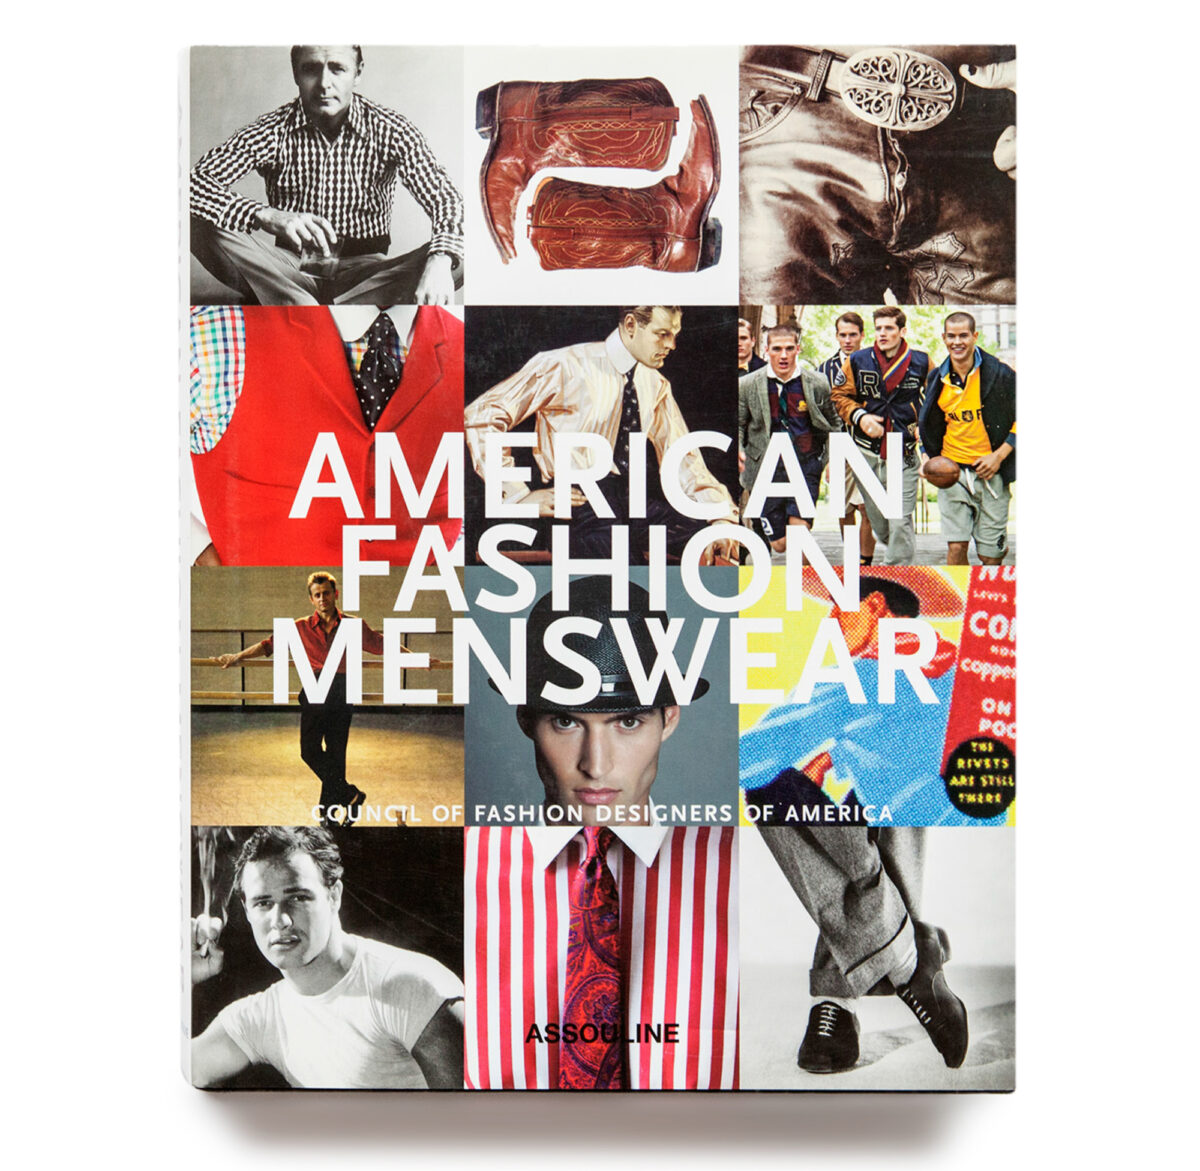 Council of fashion designers of america wiki